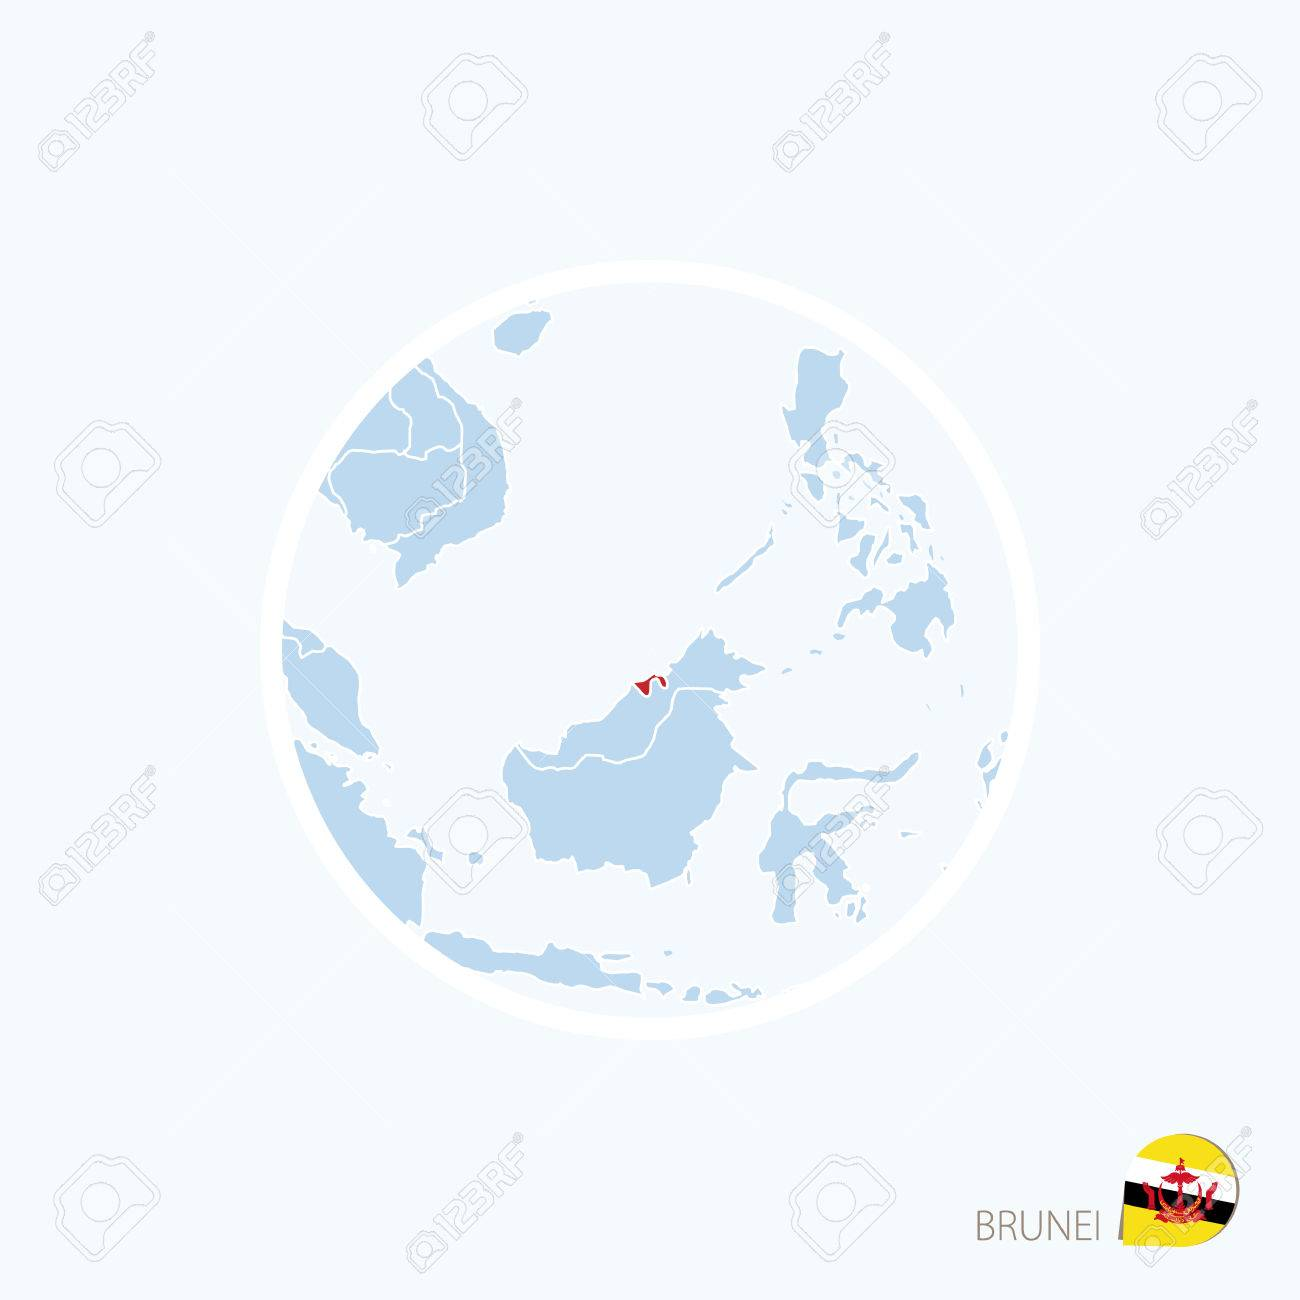 Map Of Asia Brunei.Map Icon Of Brunei Blue Map Of Asia With Highlighted Brunei